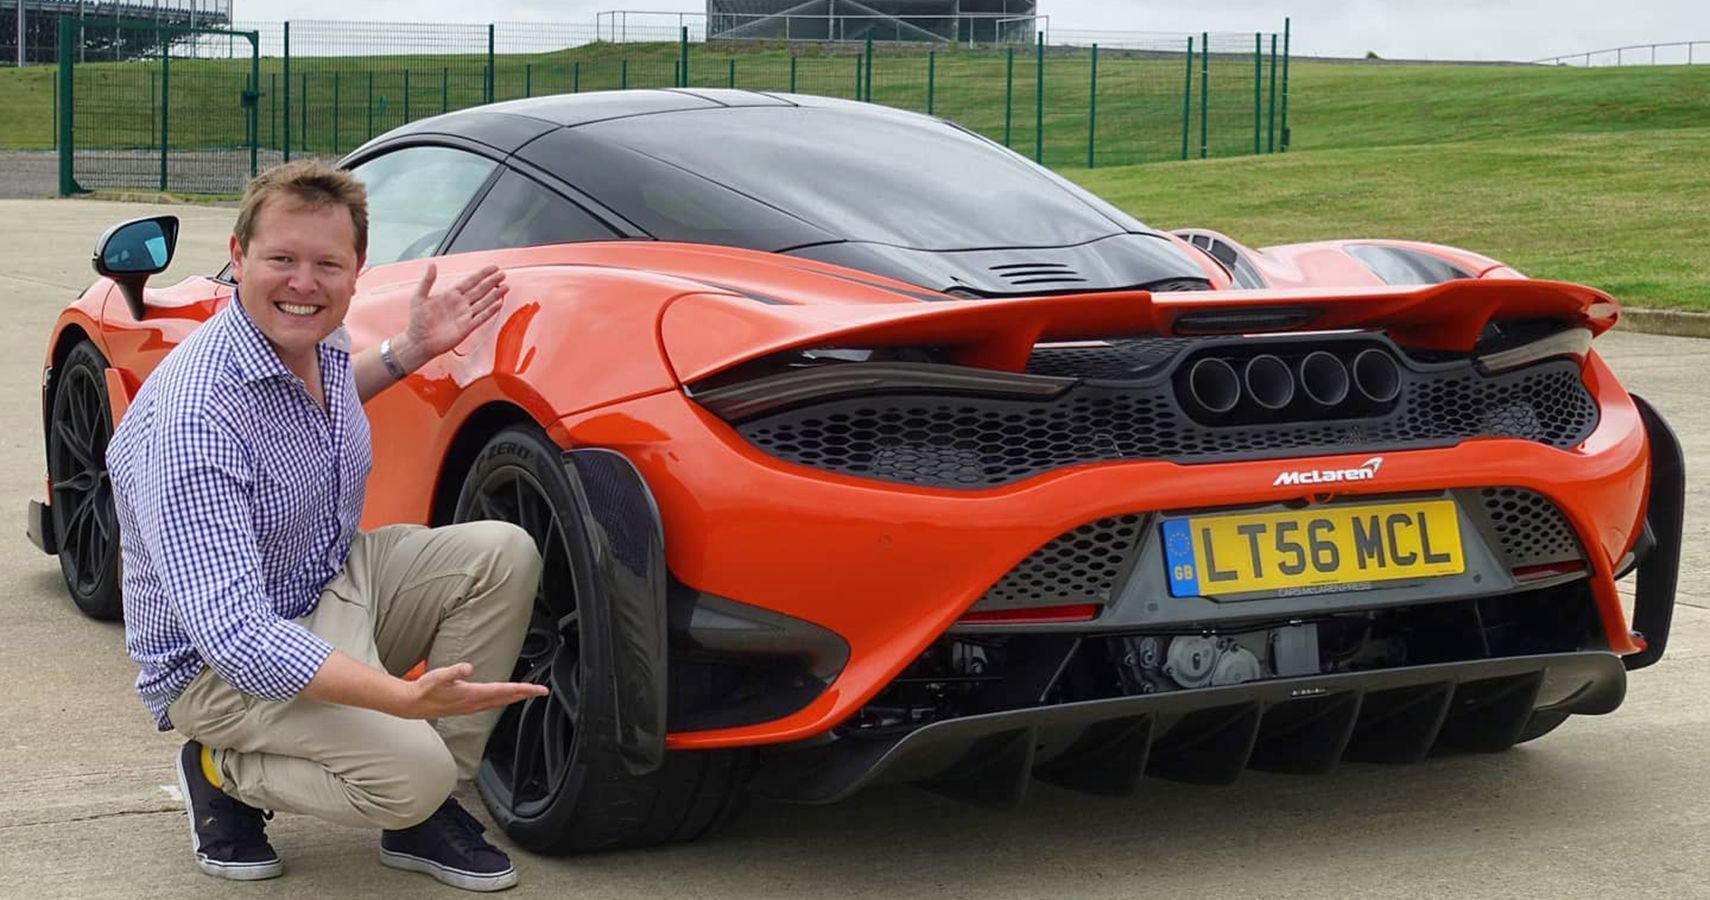 Shmee150 Drives A Brand New McLaren 765LT For The First Time